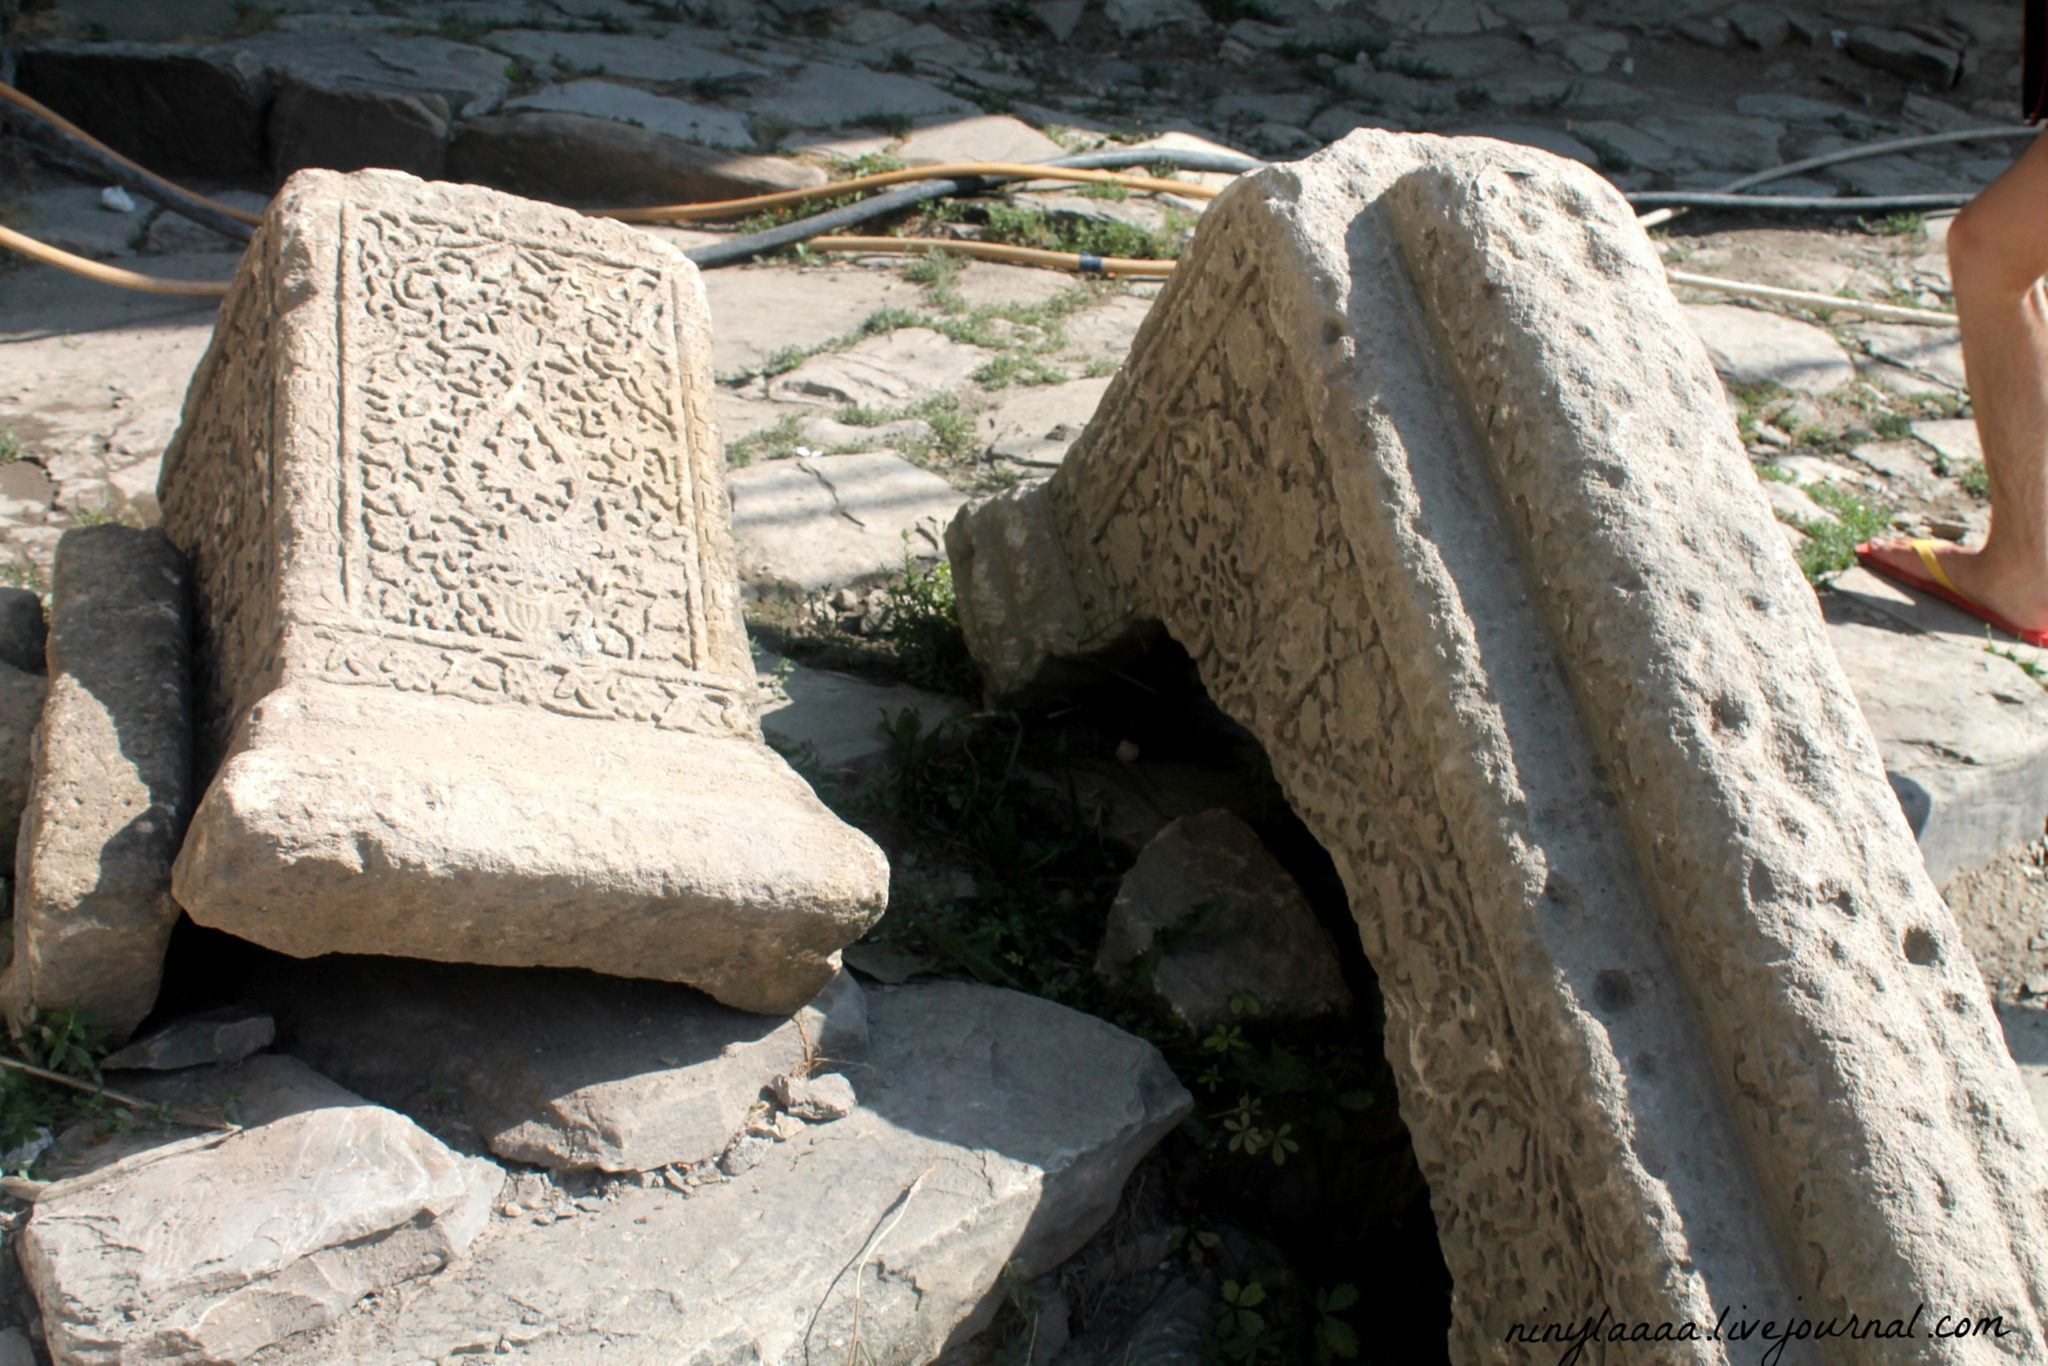 While walking around the bazaars, you can find gravestones of the Shahs. For some reason, they have been brought down from their original place in mountains. Also, pay close attention to the designs, as they also contain secret meanings.